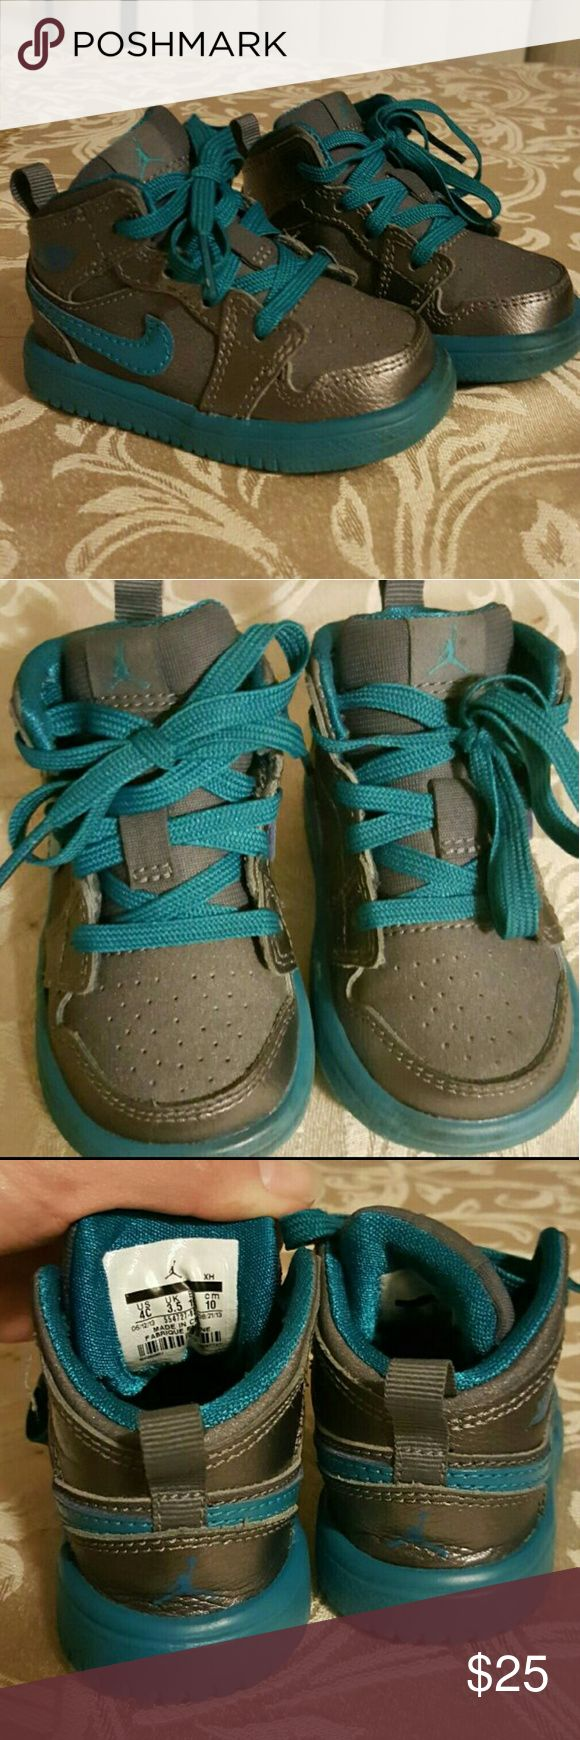 Teal baby jordans infant shoes Great condition... no box. Nike Shoes Baby & Walker